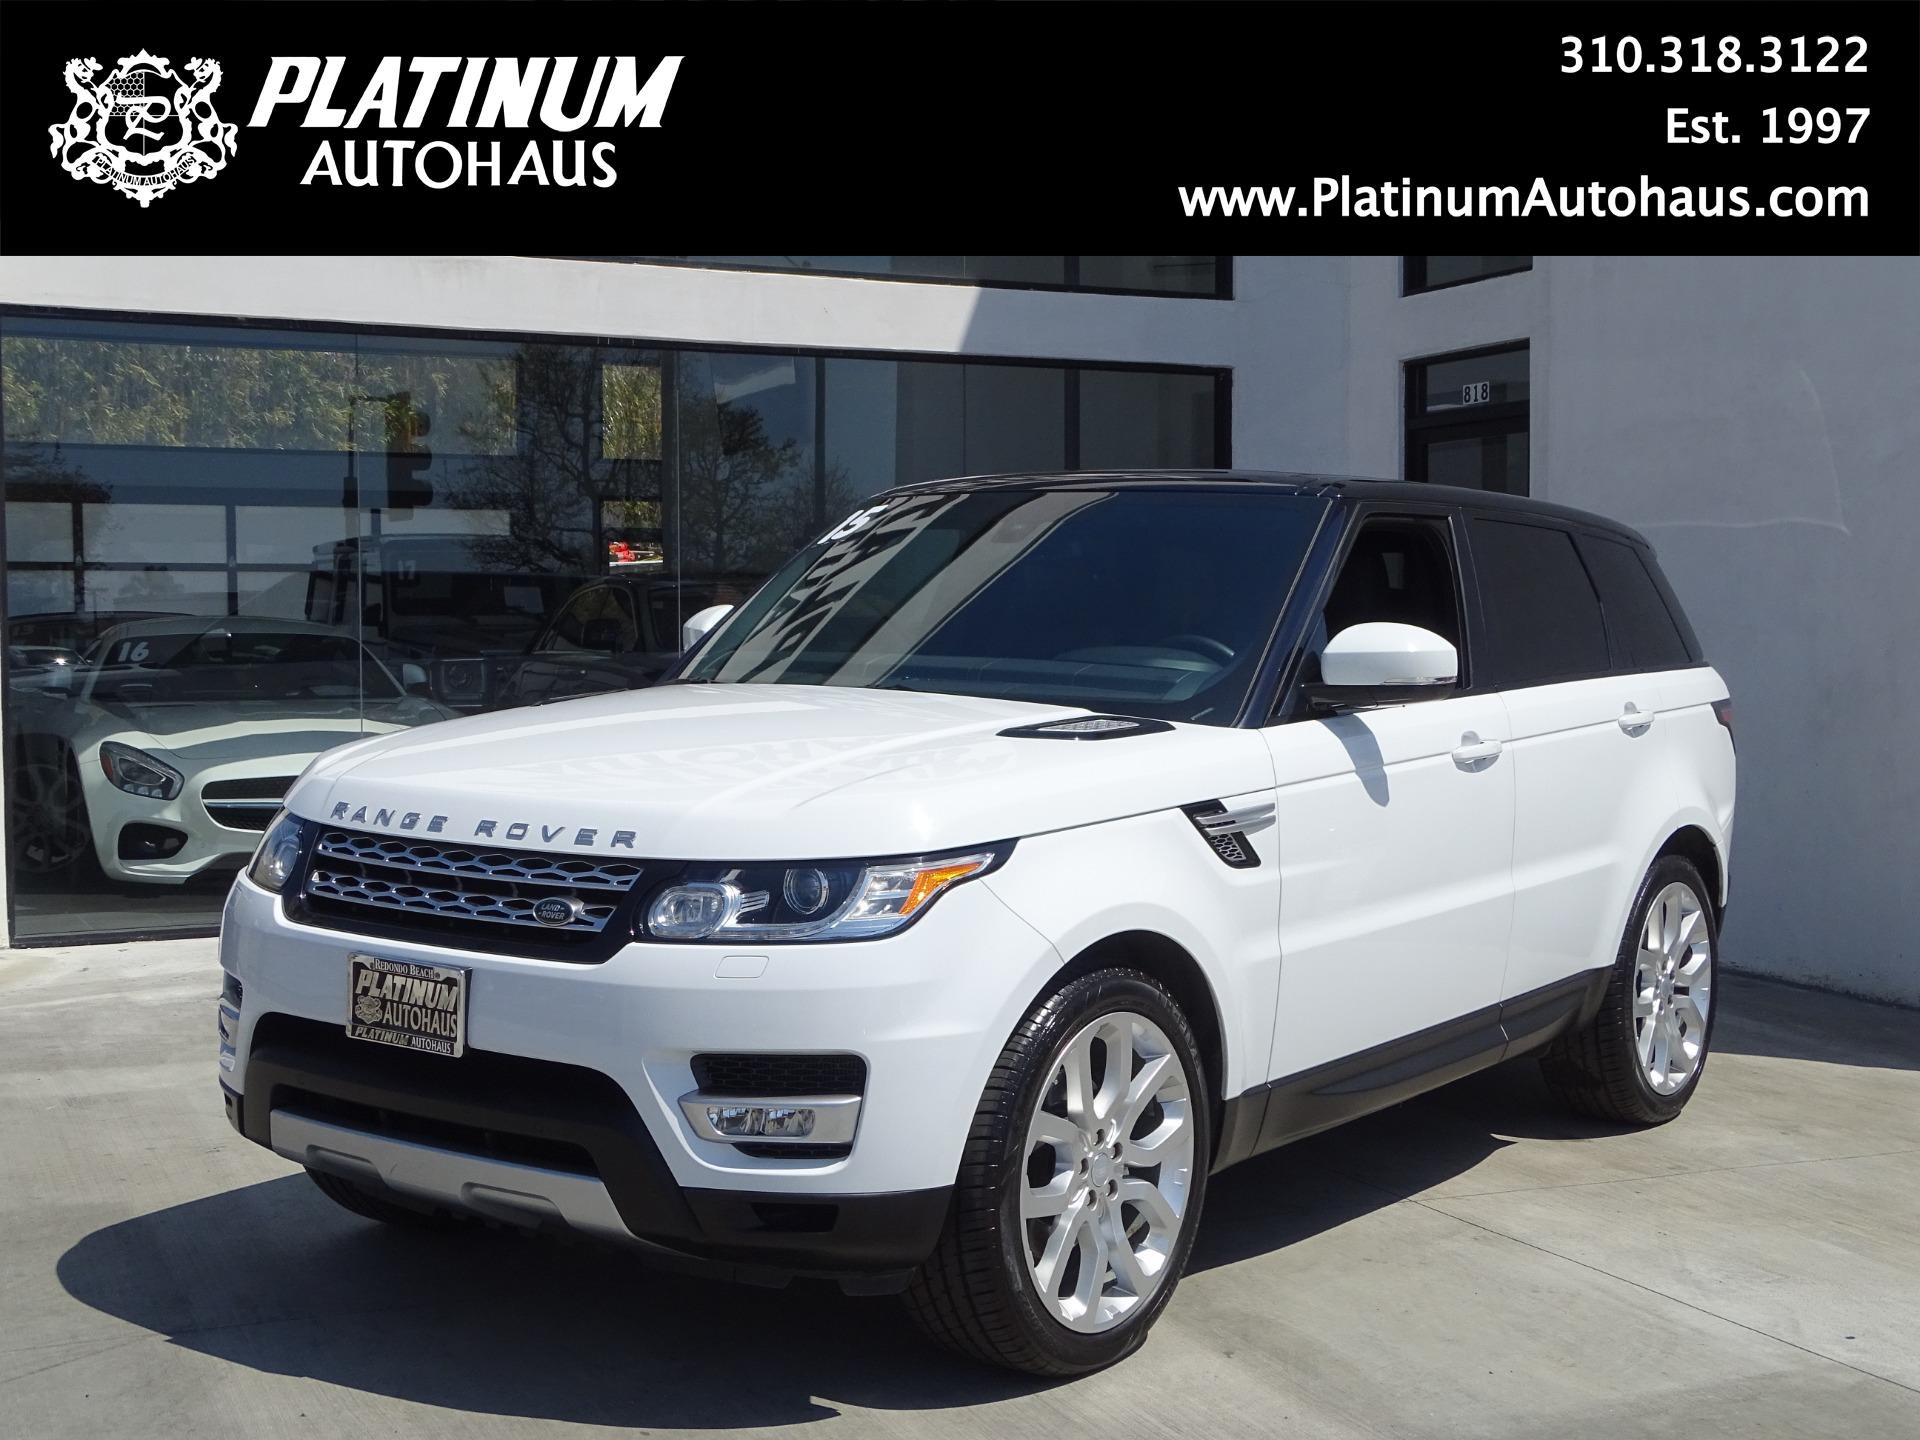 2015 Land Rover Range Rover Sport Hse Stock 6473 For